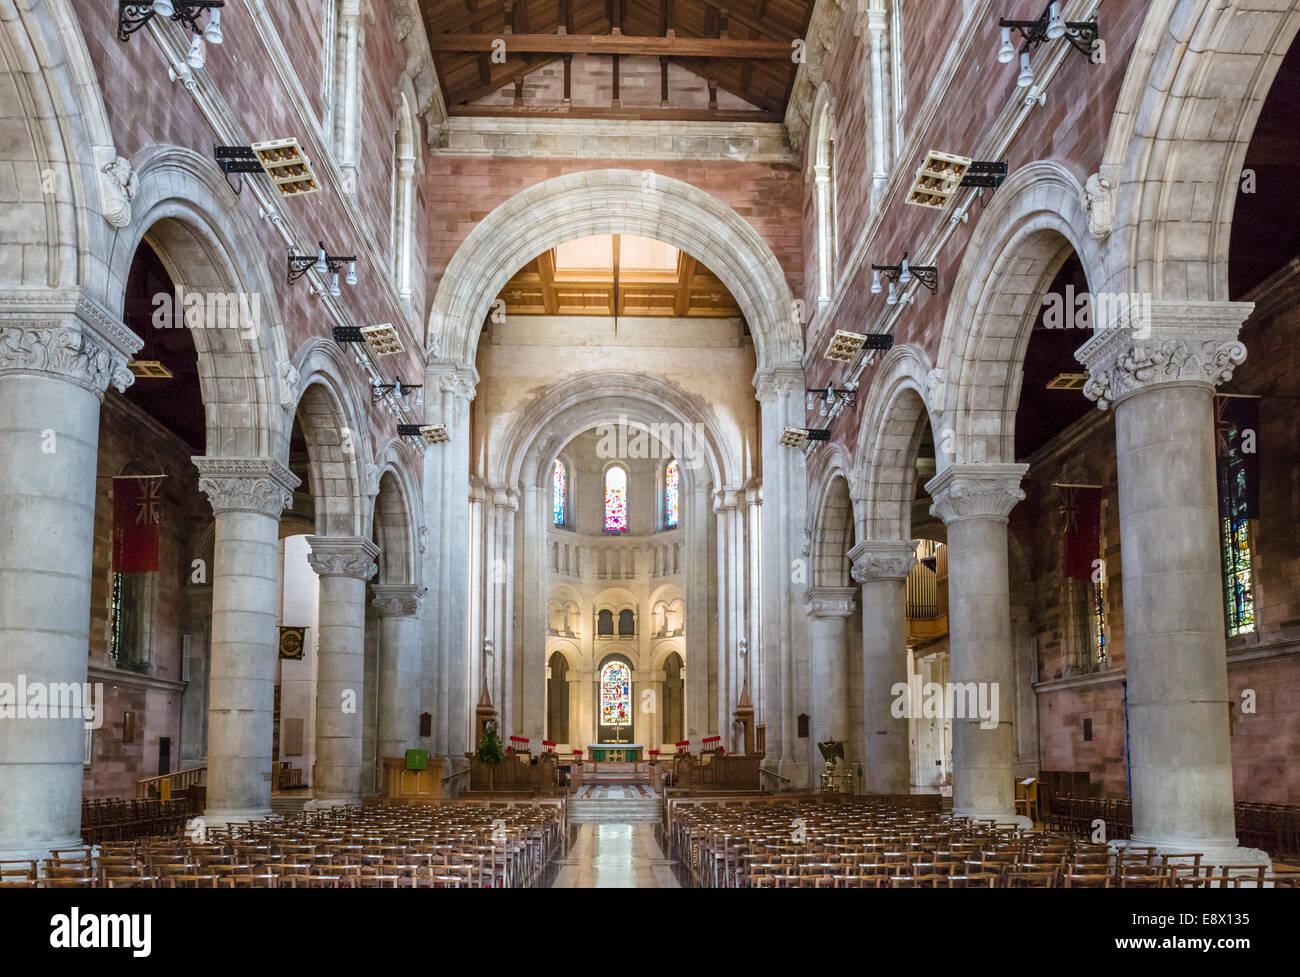 Interior of St Anne's Cathedral, Cathedral Quarter, Belfast, Northern Ireland, UK - Stock Image